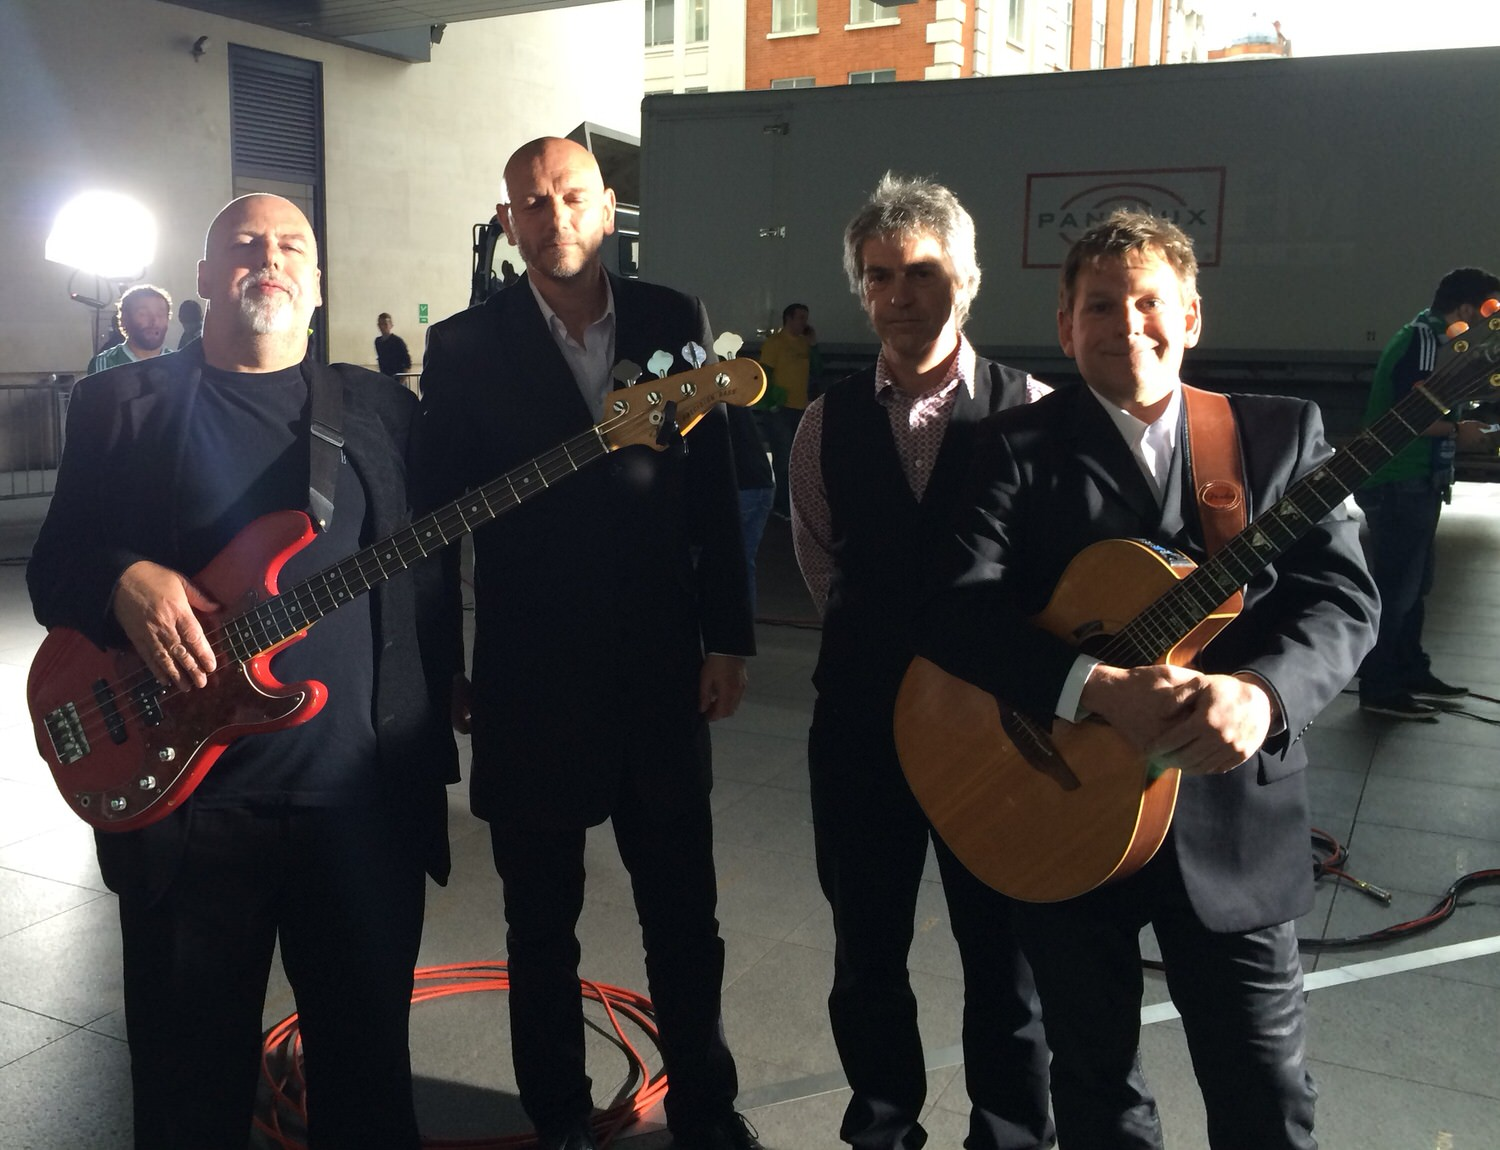 The musicians posing with their instruments